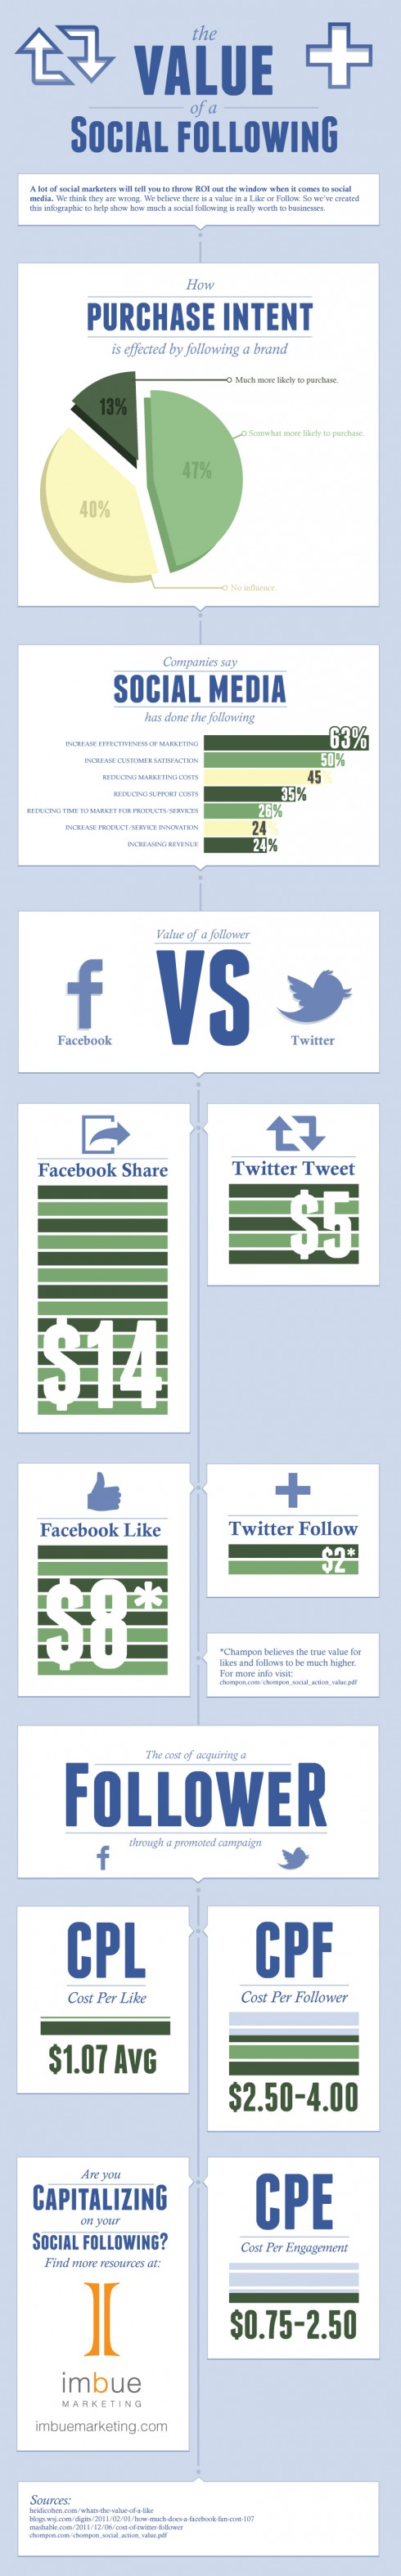 The Value of a Social Following [INFOGRAPHIC]